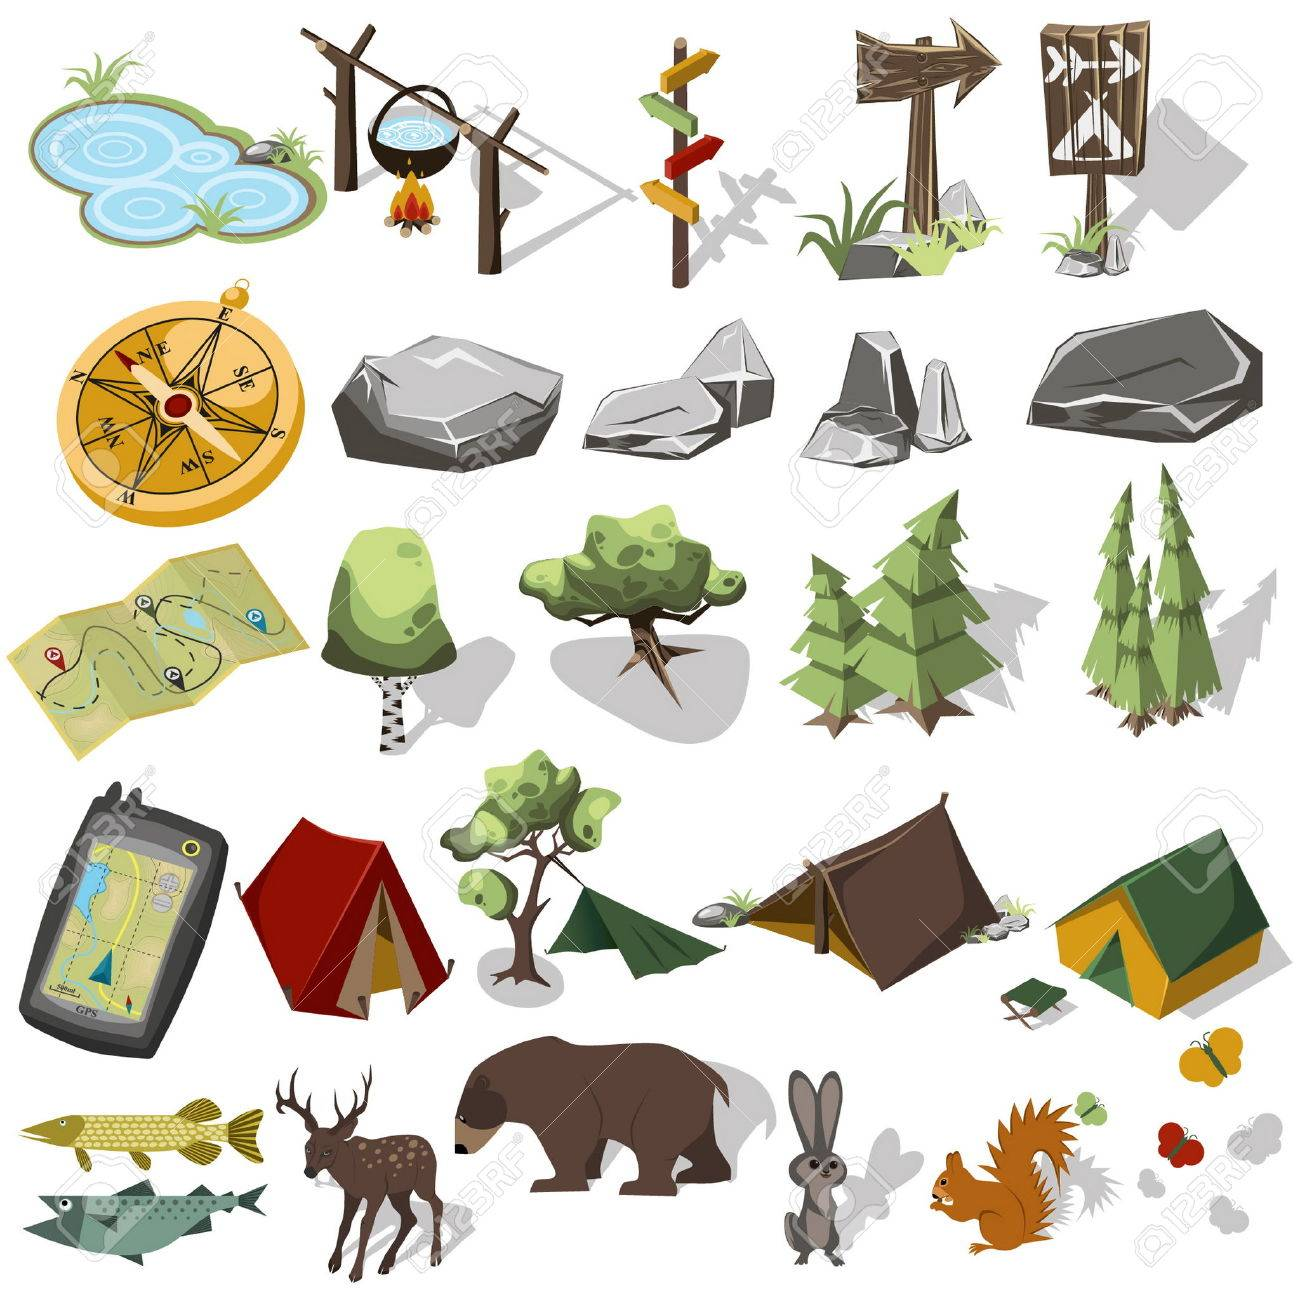 Isometric 3d forest hiking elements for landscape design. Tent and camp, tree, rock, wild animals. Navagation equpment. Vector illustration - 52414589